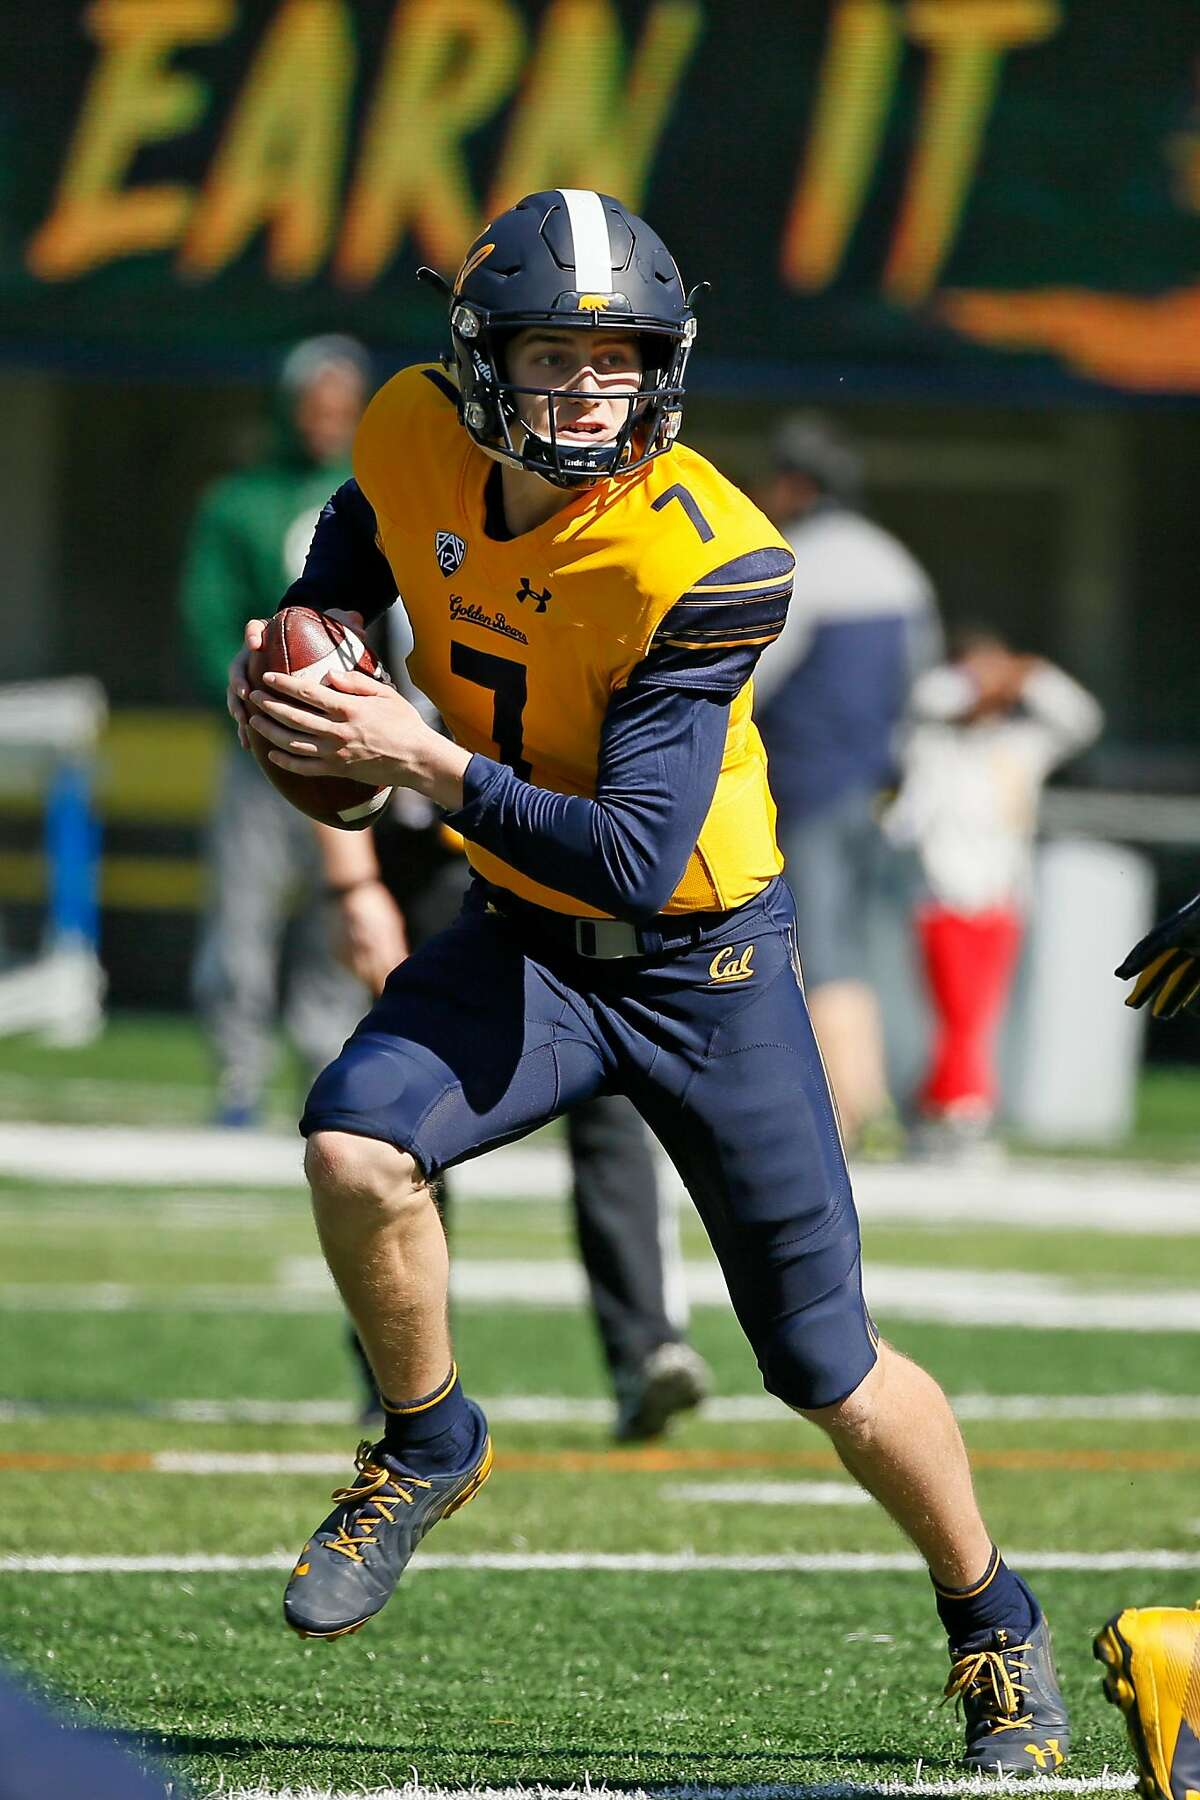 California Golden Bears quarterback Chase Garbers (7) keeps the ball on a read-option play during the annual Cal Spring Football Game at California Memorial Stadium on Saturday, March 16, 2019, in Berkeley, Calif.